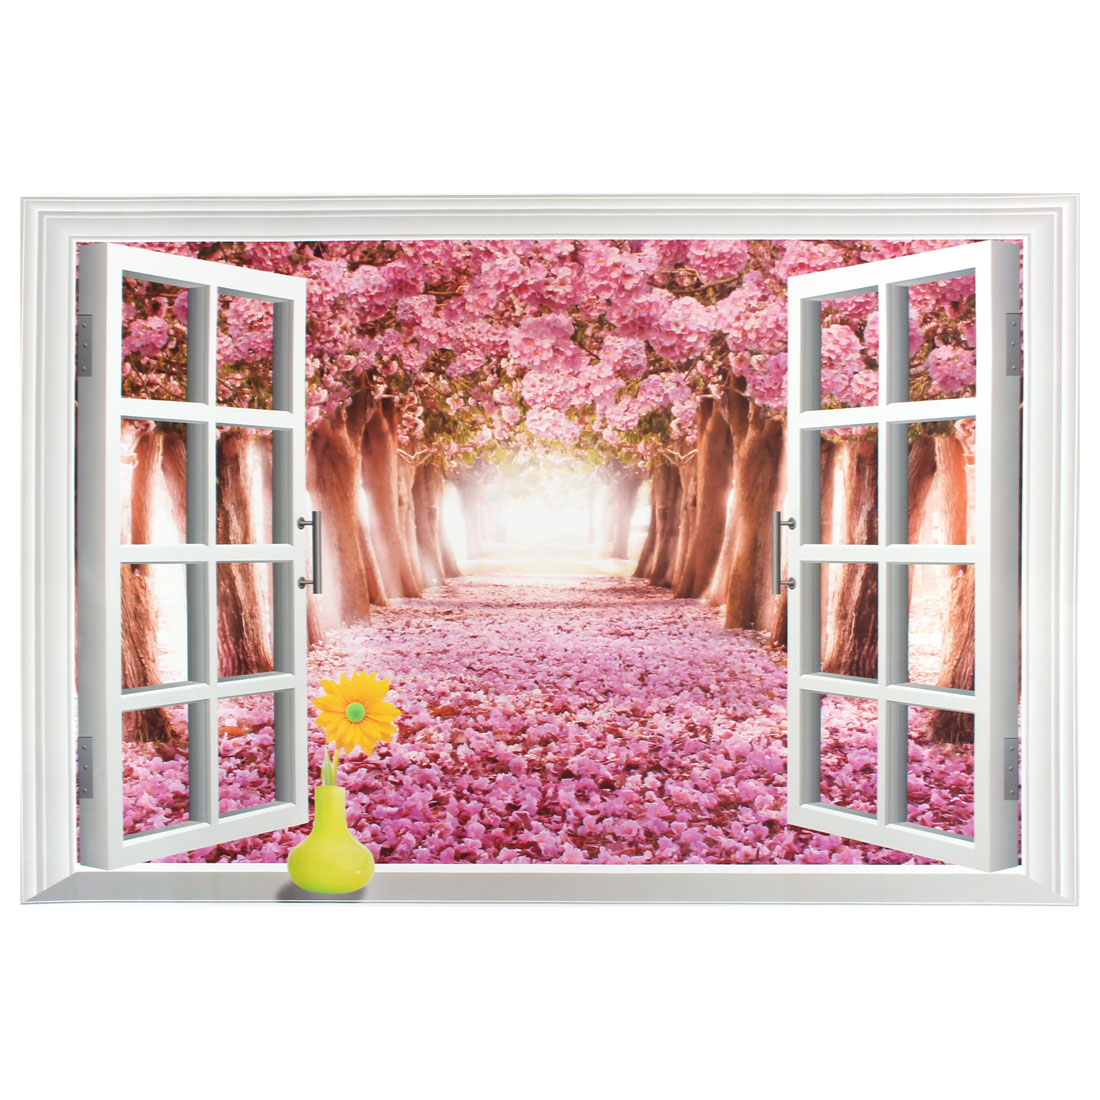 Sakura Pattern 3D Window Scenery Removable Wall Sticker Art Mural Decal 90 x 60cm